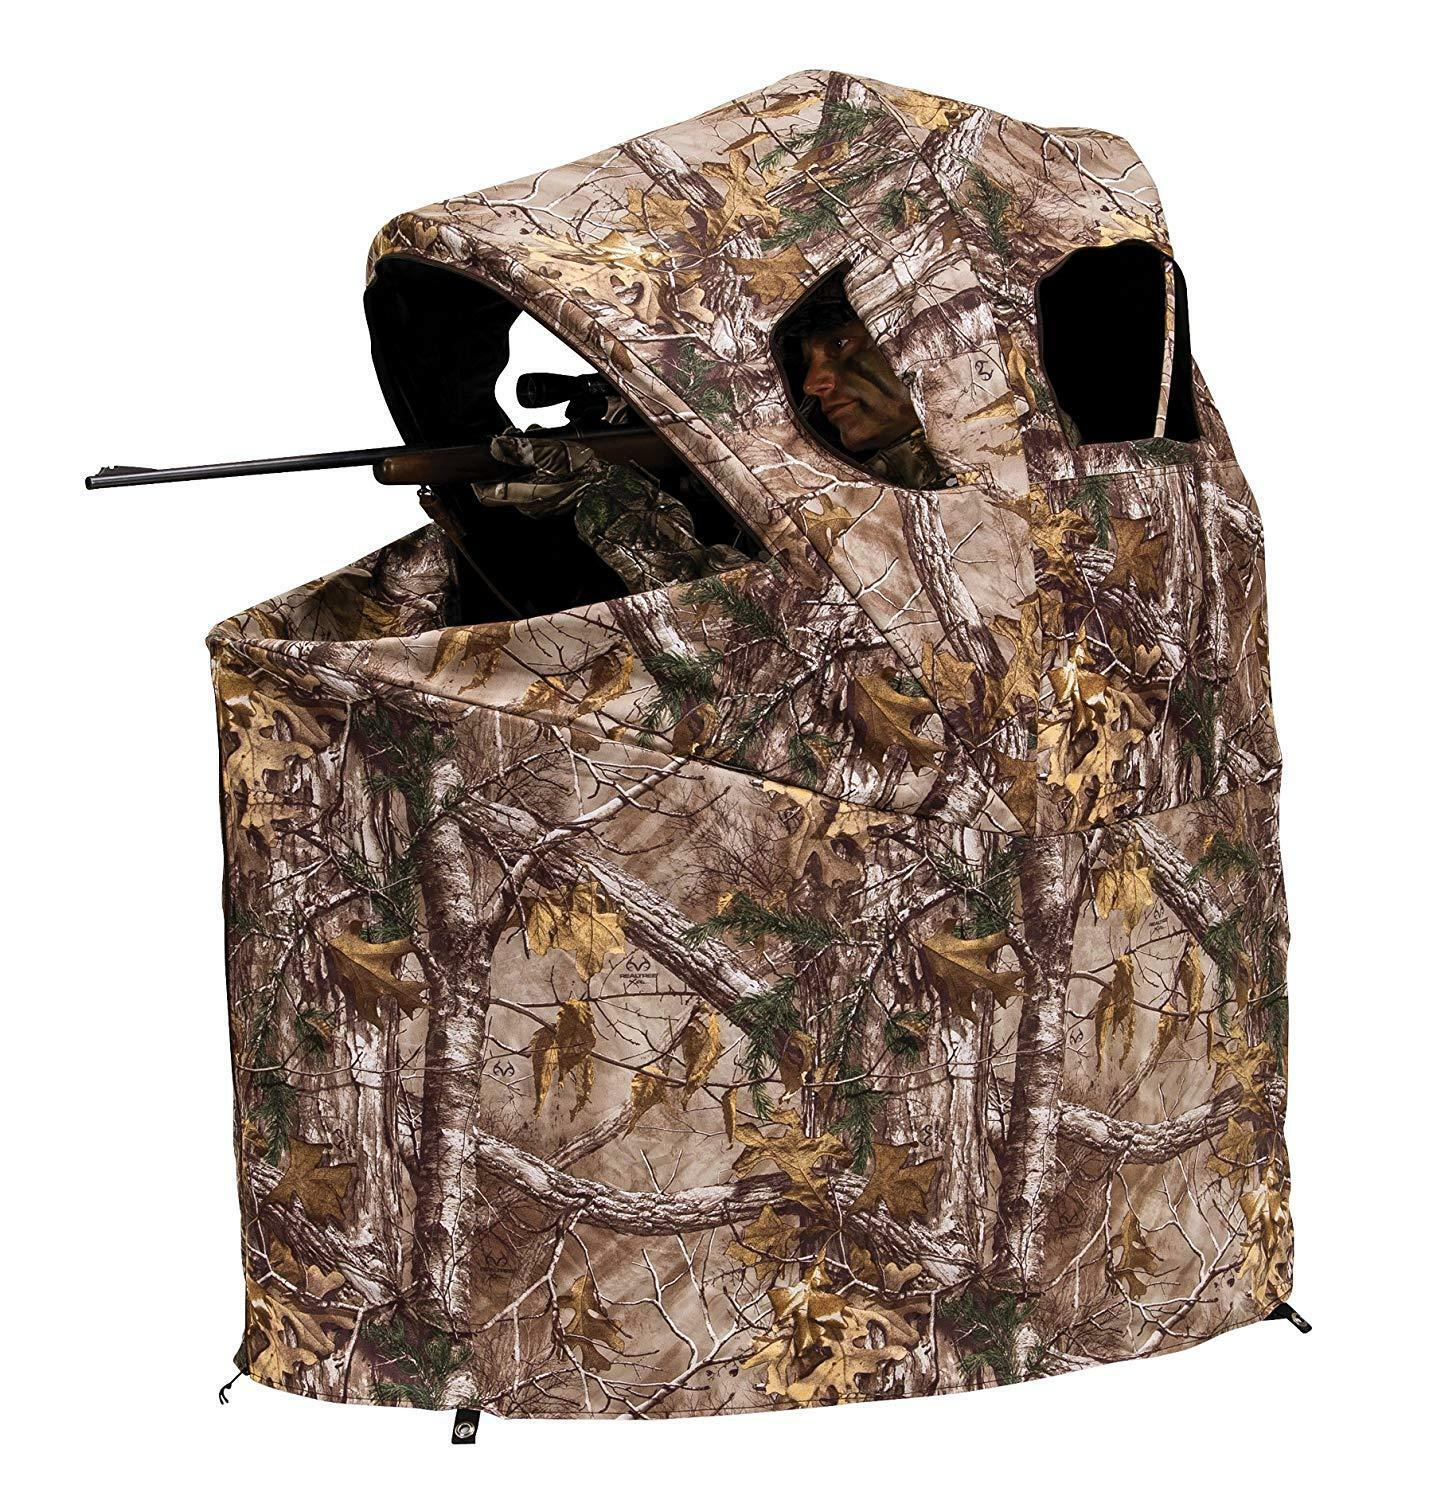 Ground Blind Hunting Chair Seat Foldable Portable Bow Rifle Realtree Xtra Camo